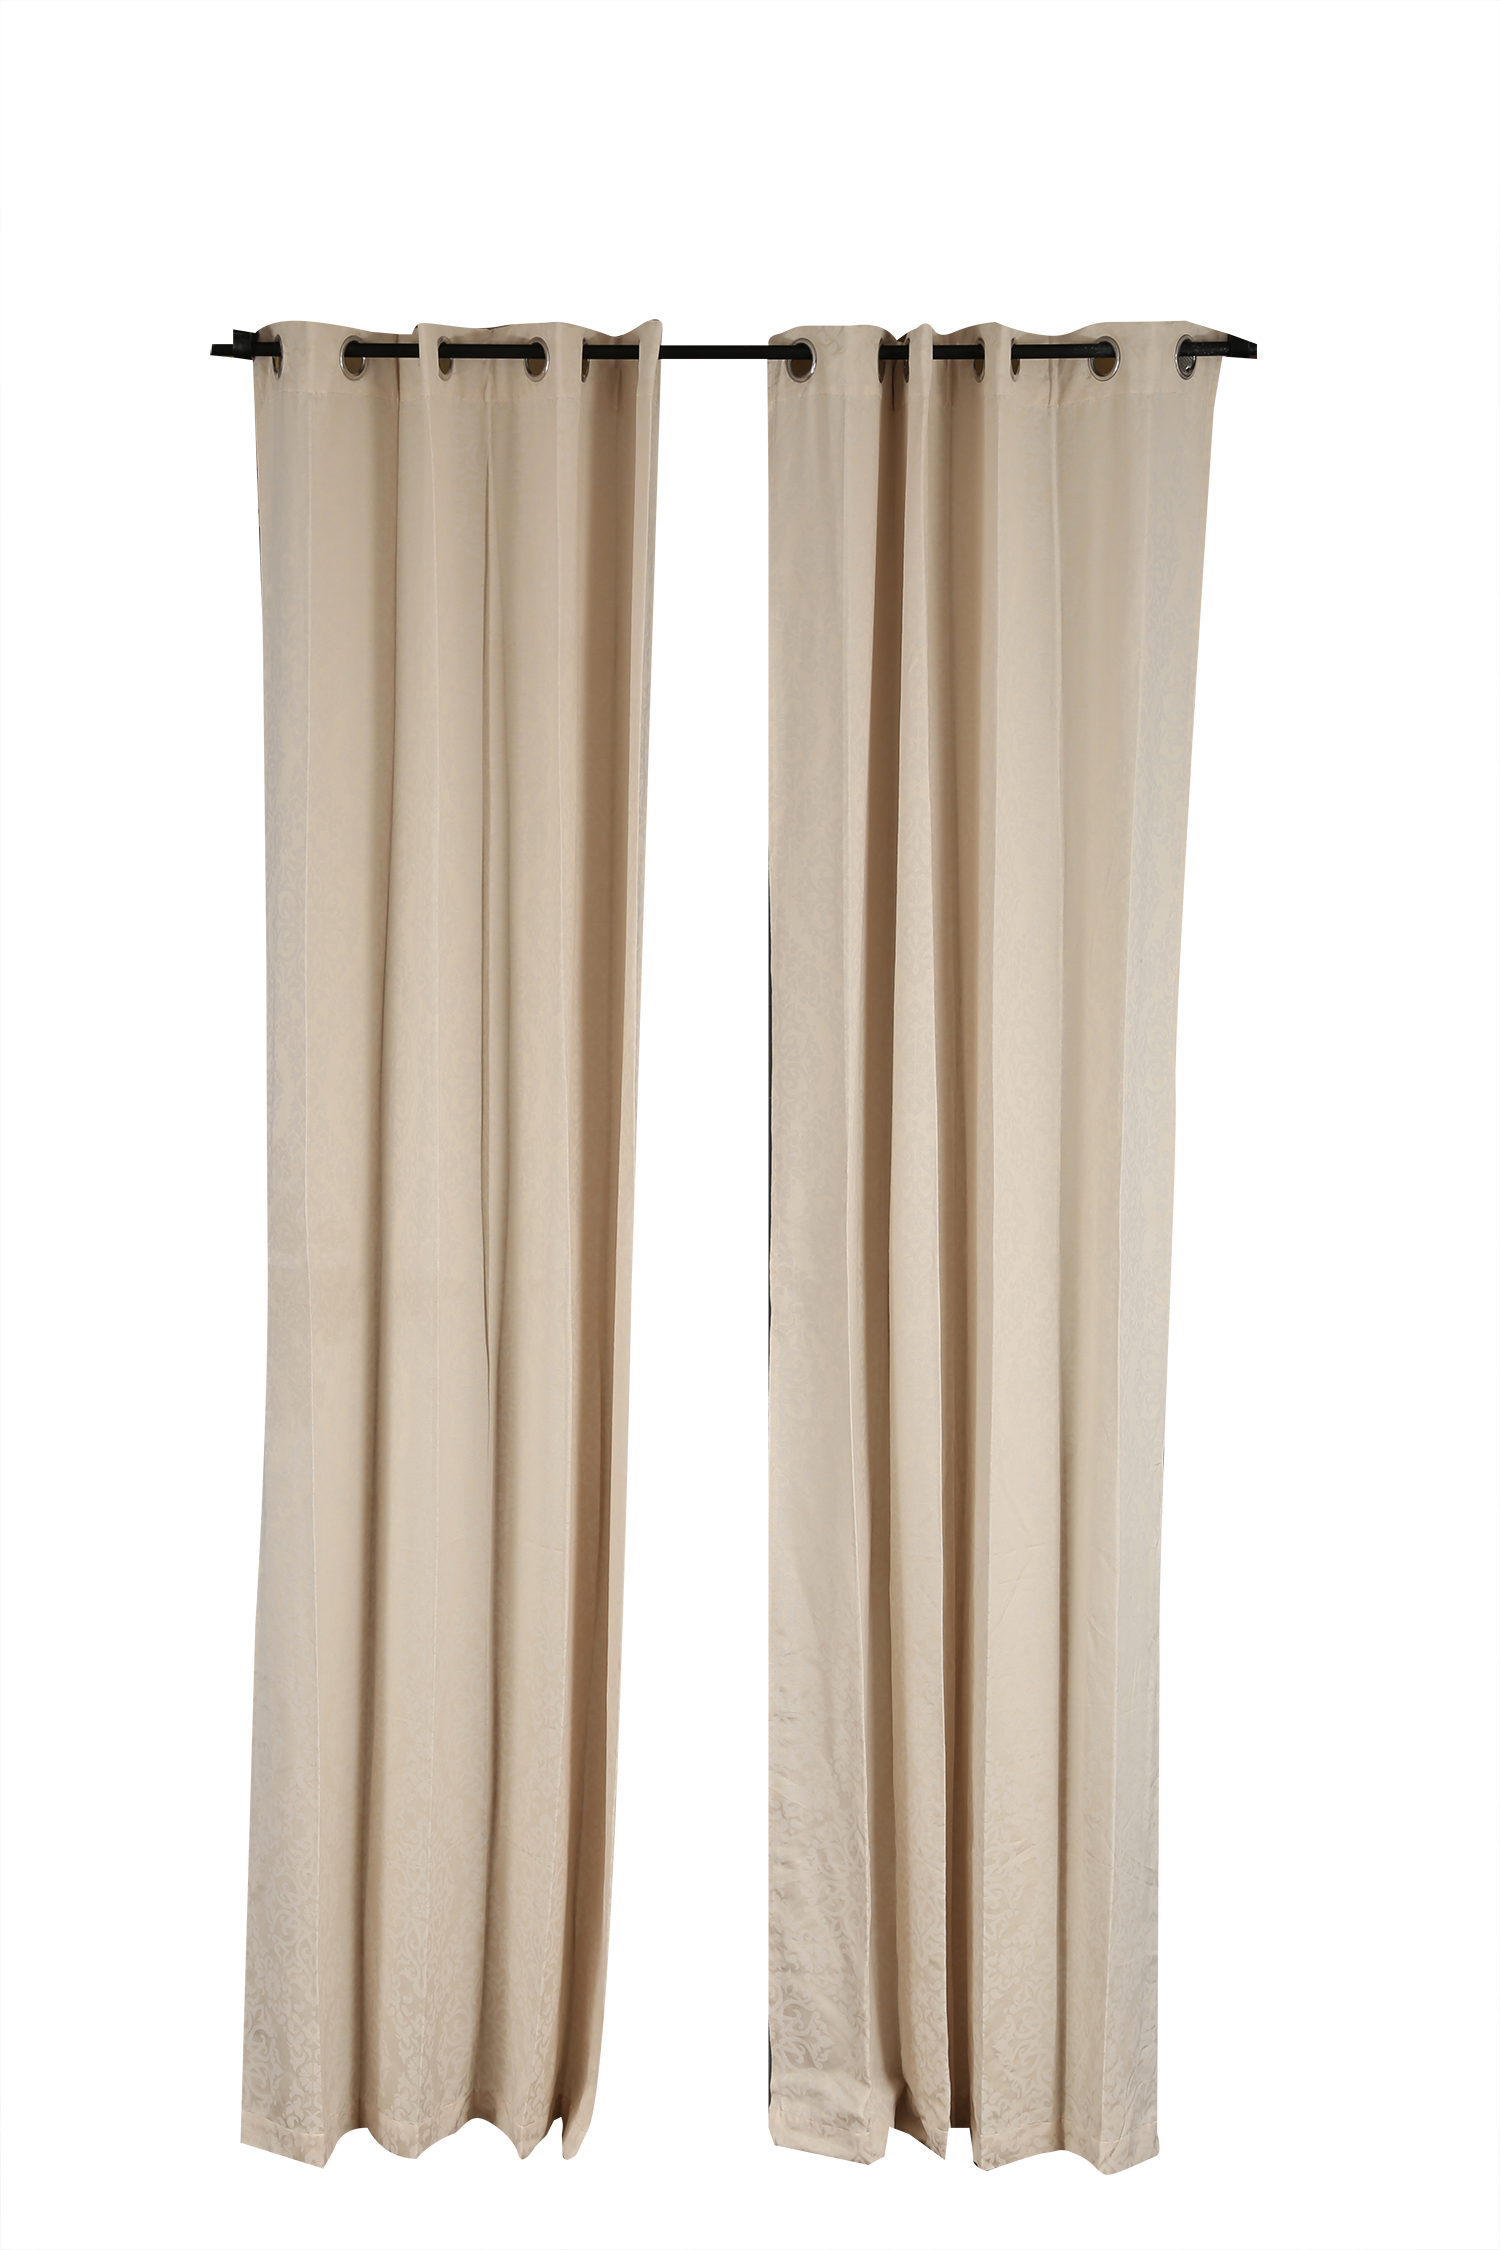 Florina Door Curtain Off White Polyester Door Curtains in Off White Colour by Living Essence